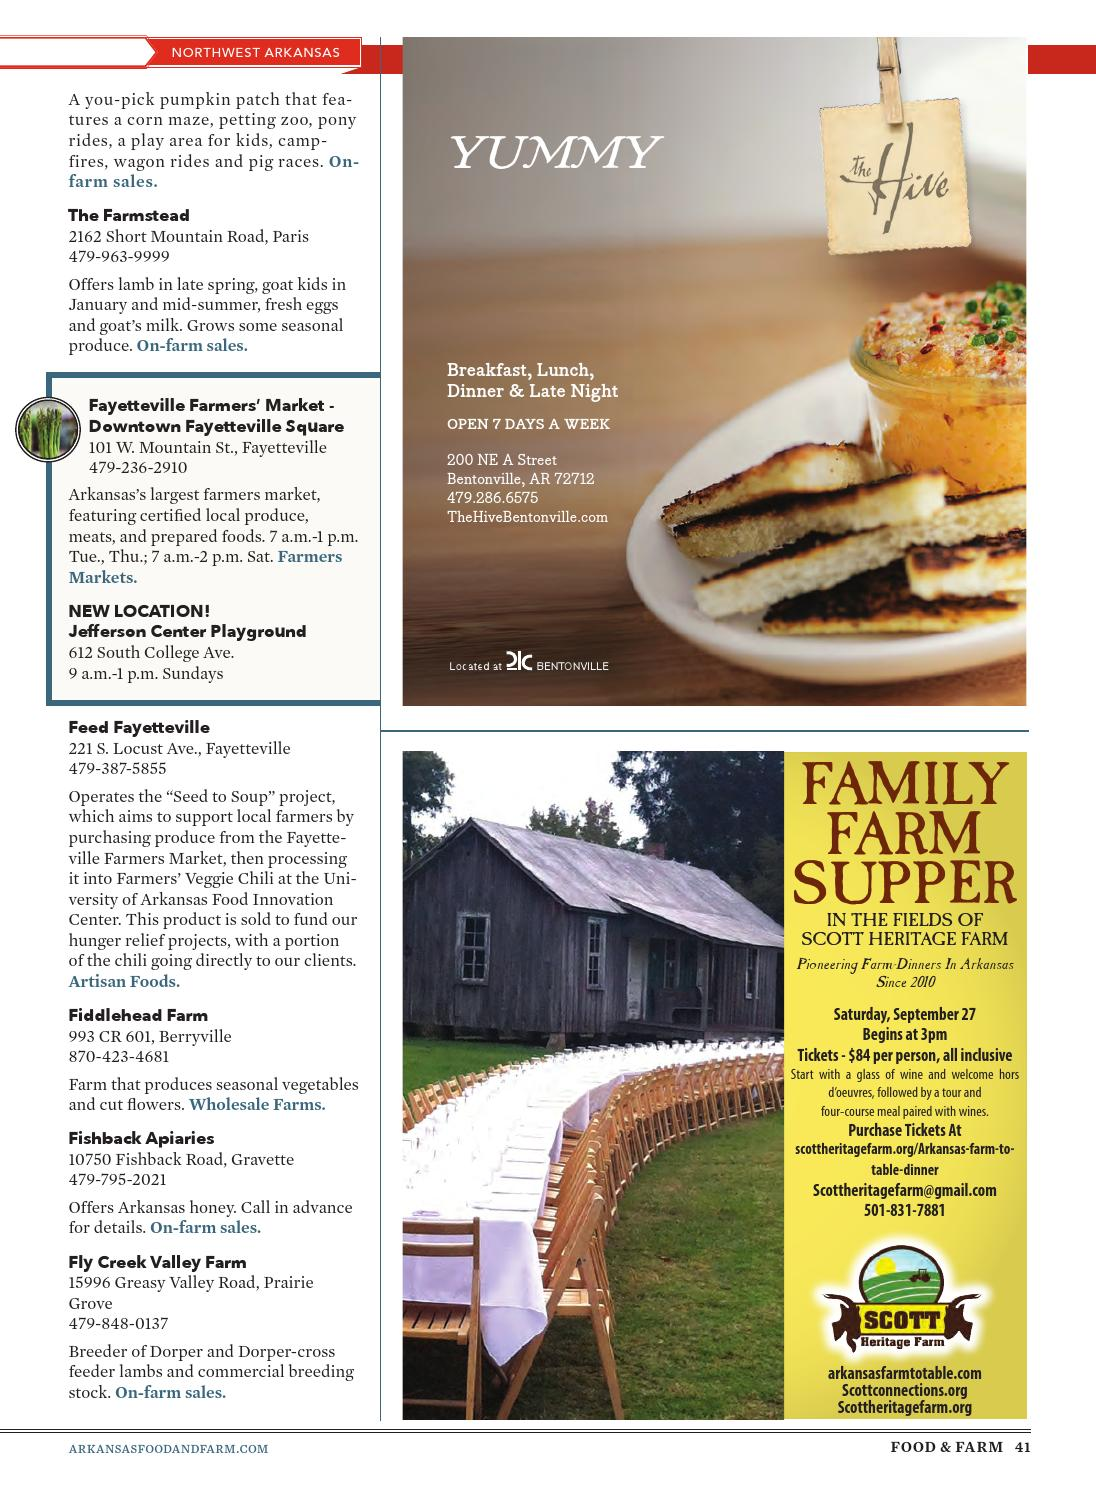 Arkansas Food & Farm - Summer 2014 by Arkansas Times - issuu